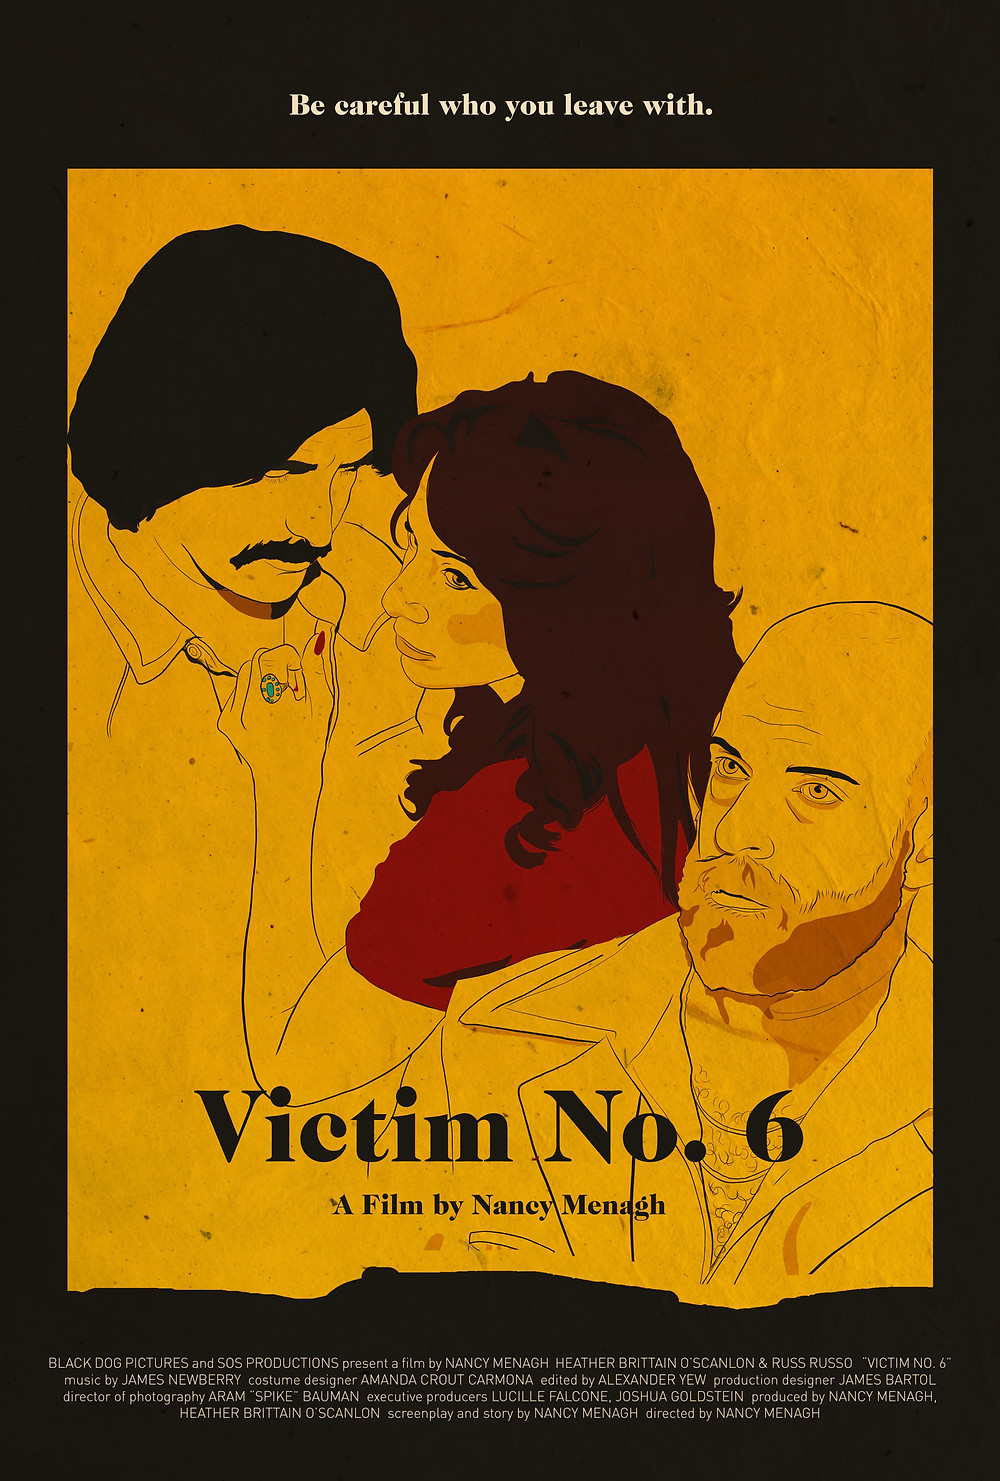 Official Poster Art for Victim No. 6